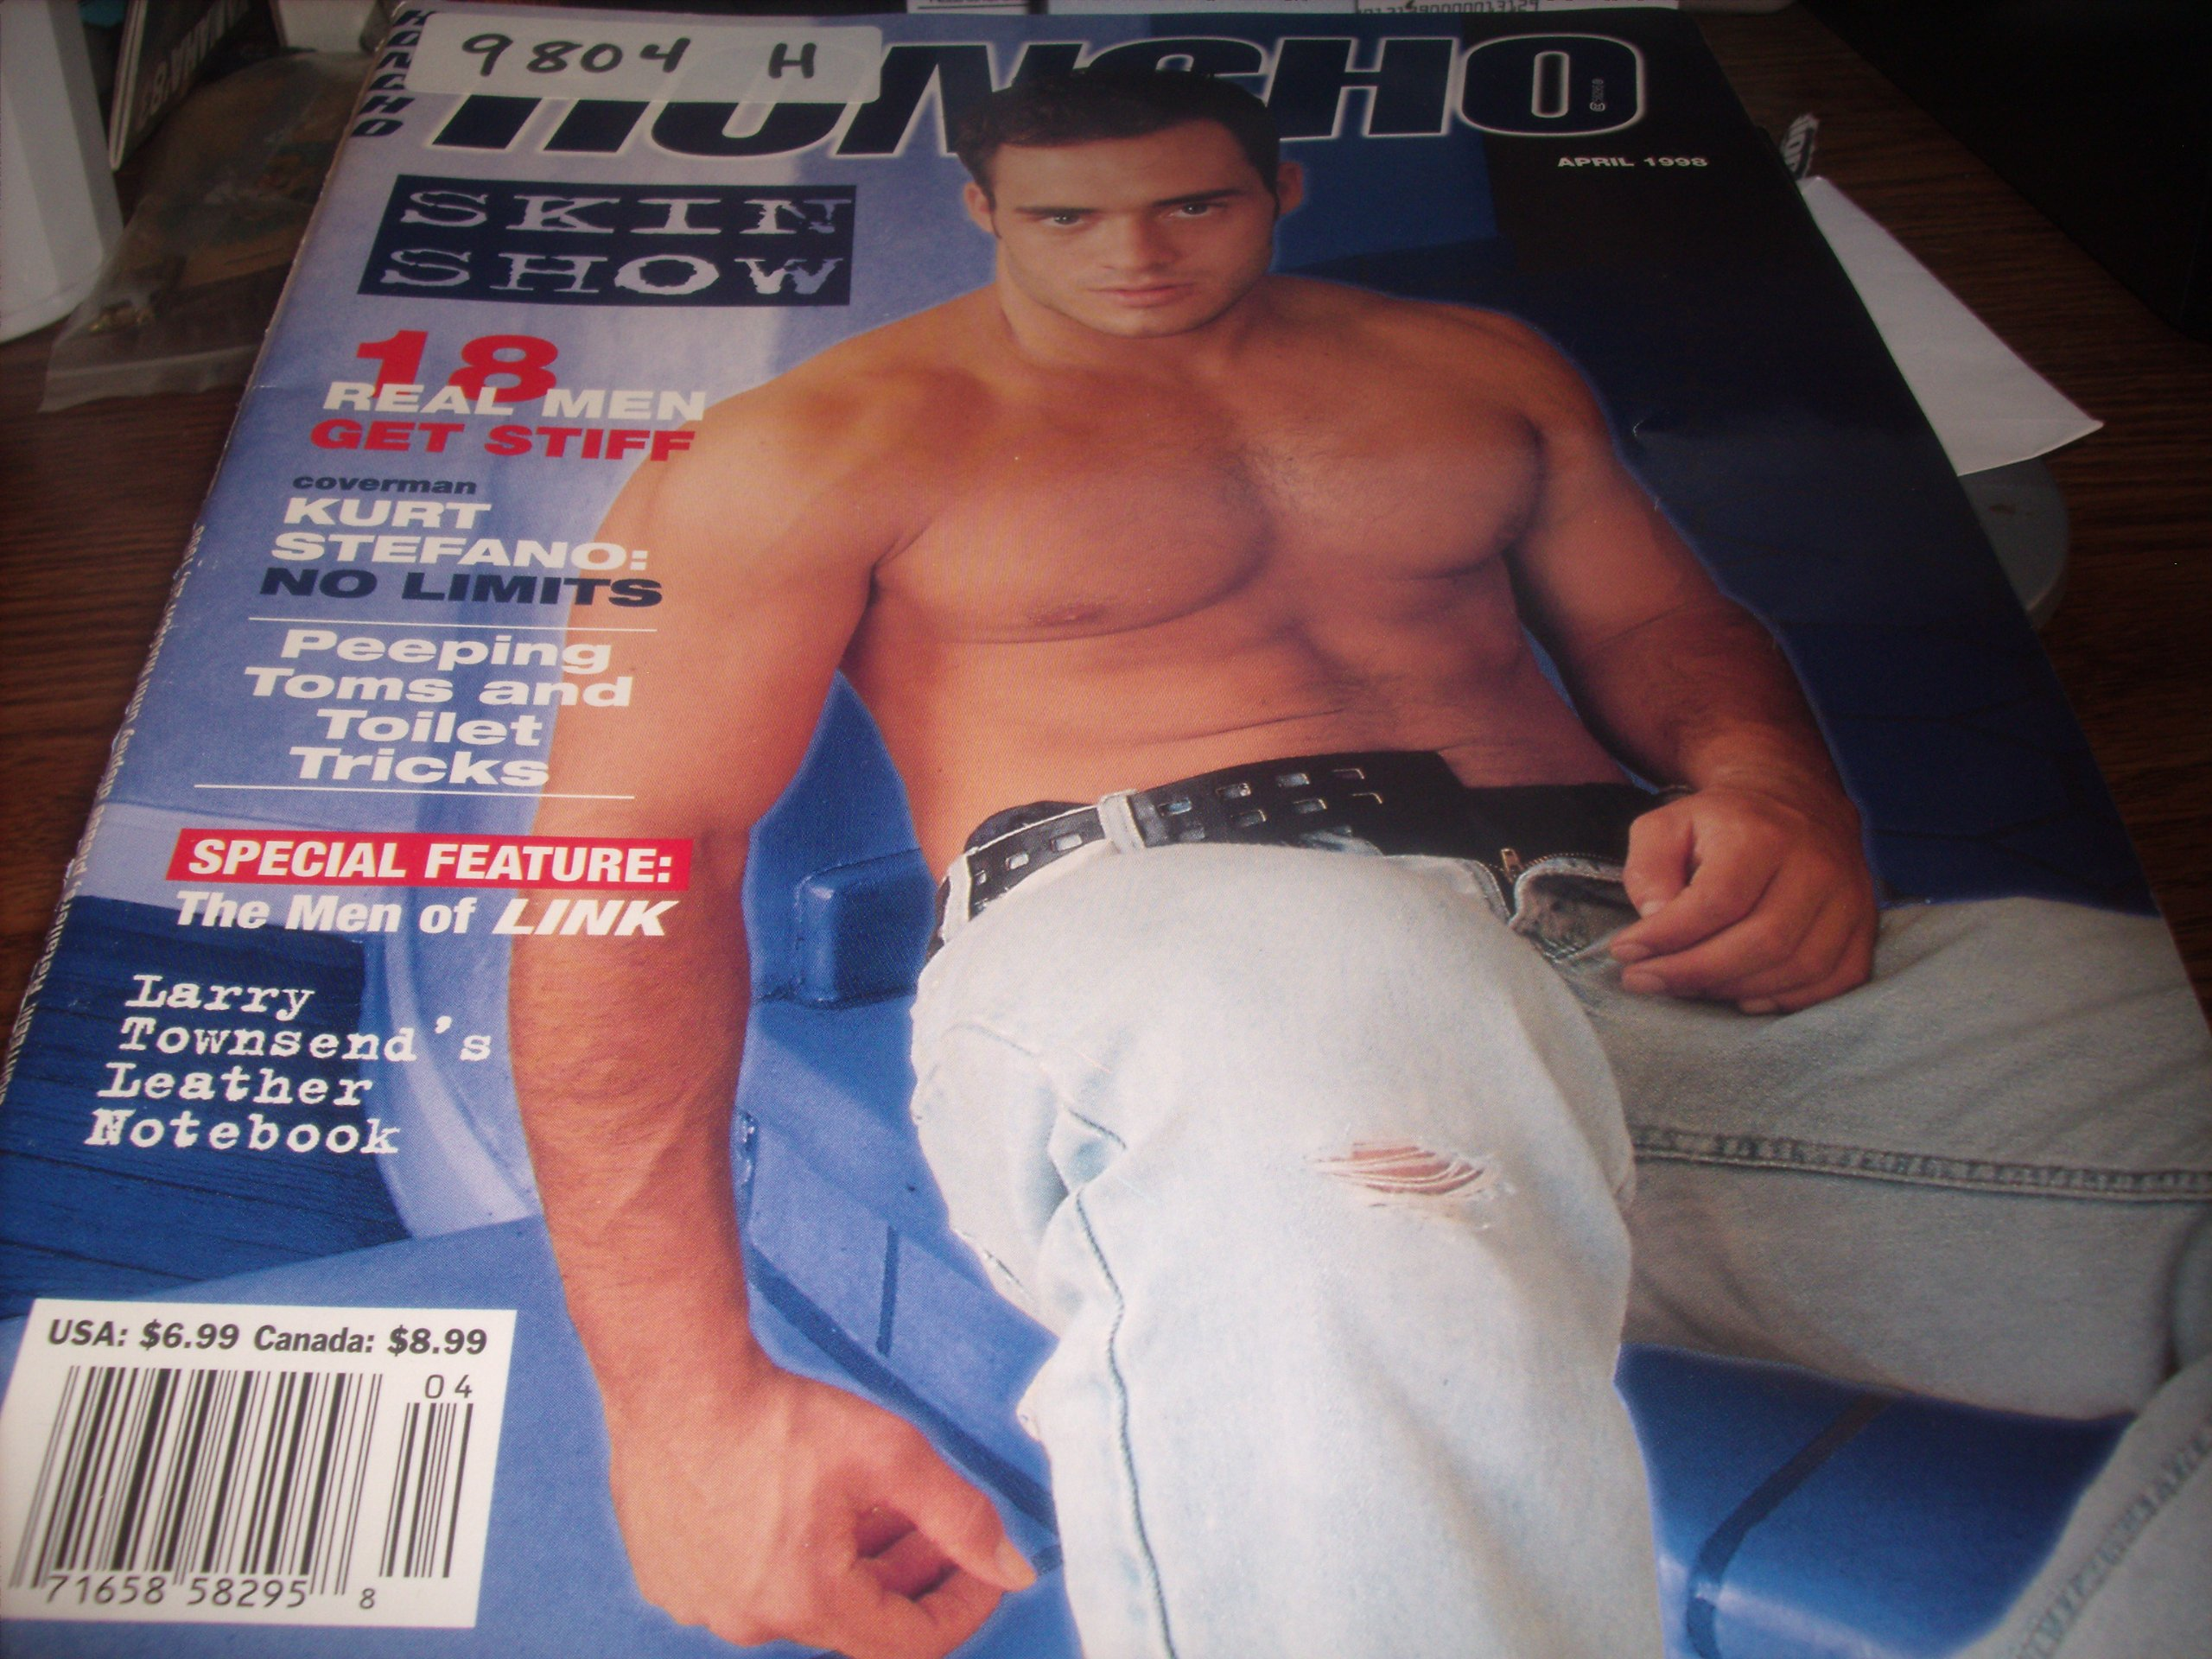 Honcho Adult Men's Gay Magazine April 1998 Skin Show, Larry Townsend's  Leather Notebook Staple Bound – 1998